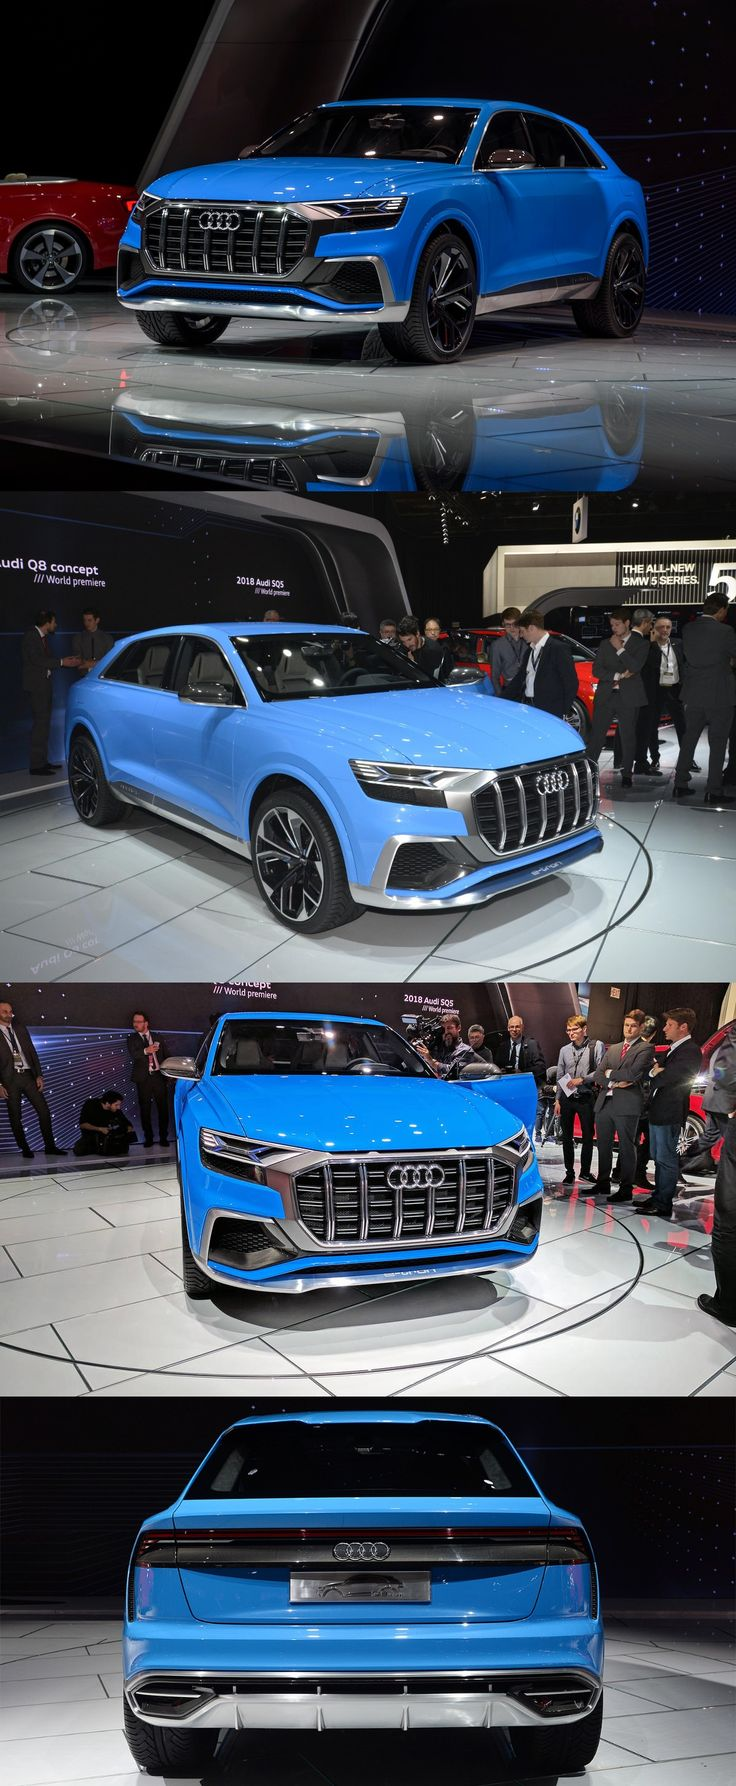 NAIAS 2017: Audi Expands Utility Vehicle Lineup with New Q5, Q8 Concept